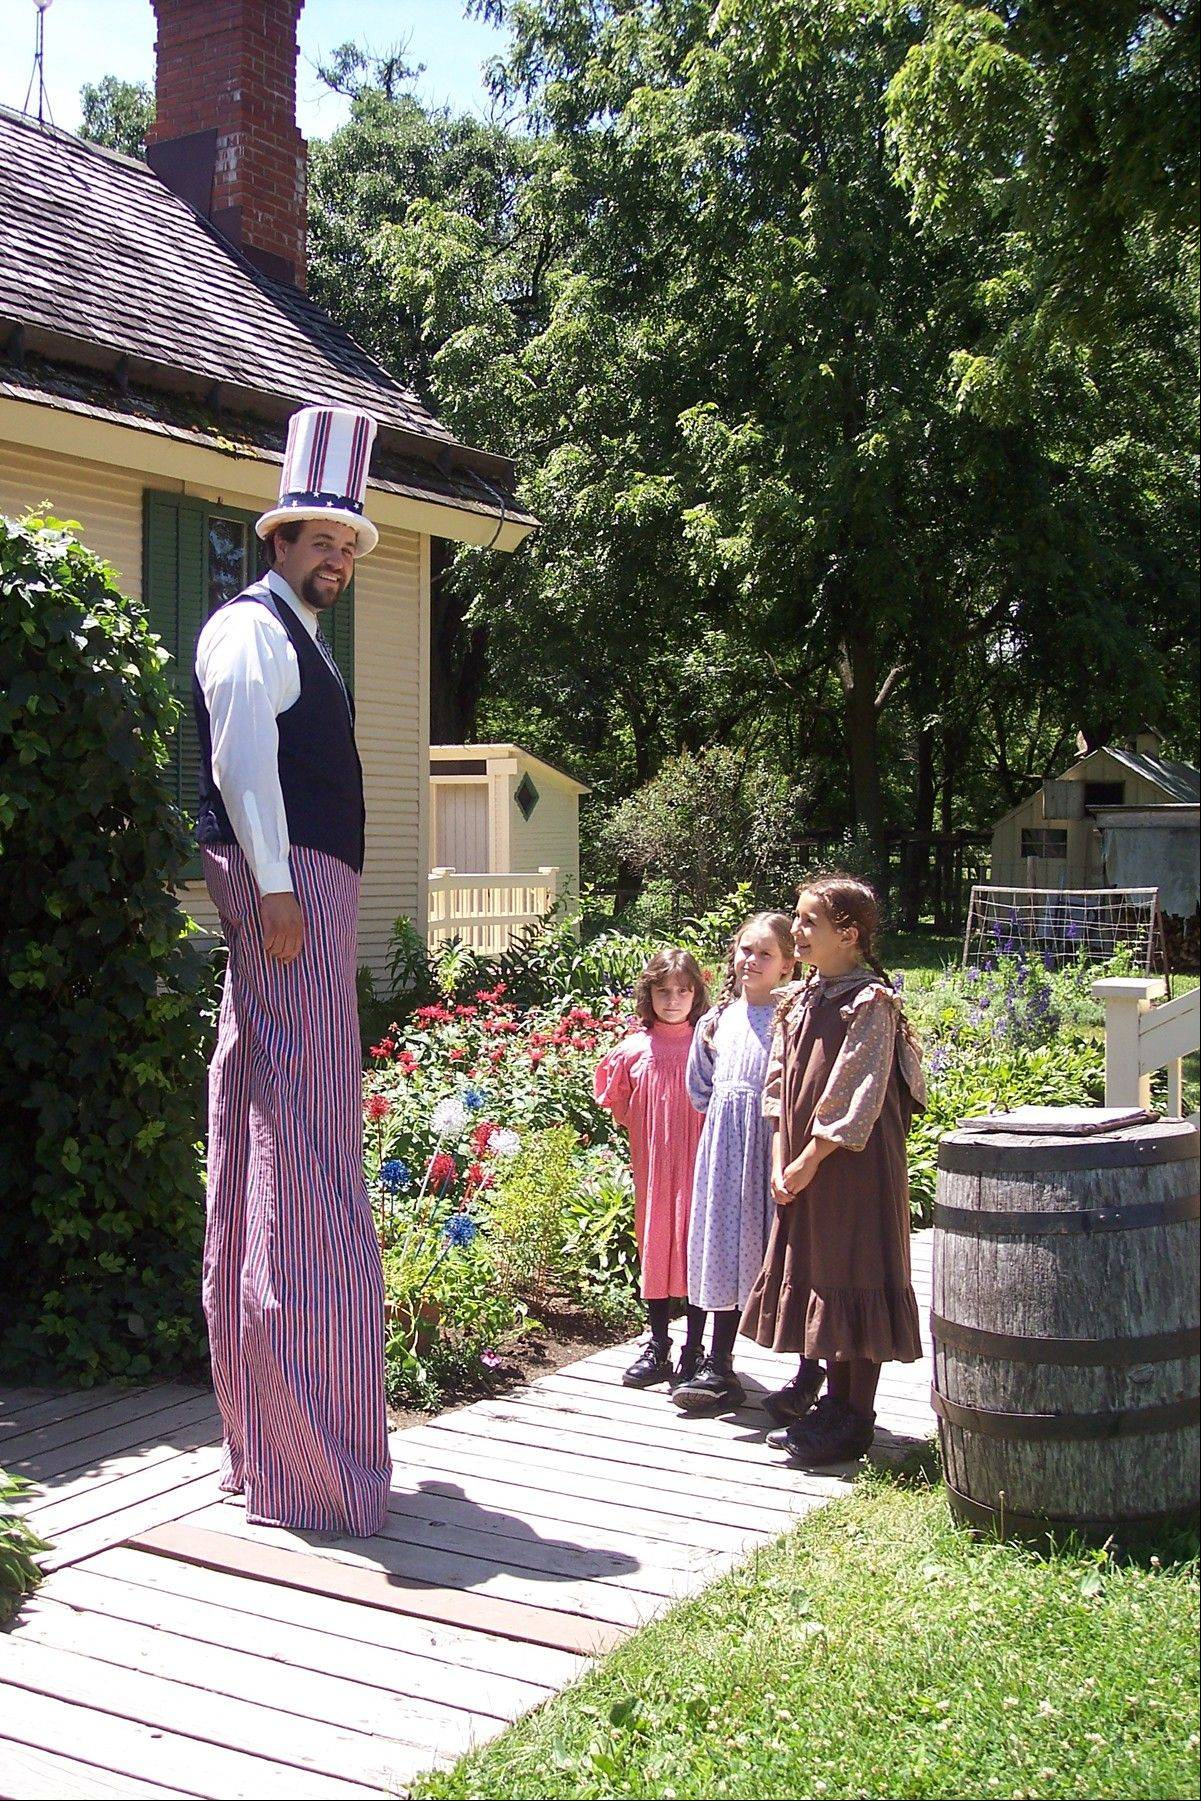 An Uncle Sam impersonator on stilts chats with costumed interpreters during a past Fourth of July Celebration at Kline Creek Farm. The 1890s farm provides a living history lesson for all who visit its grounds.